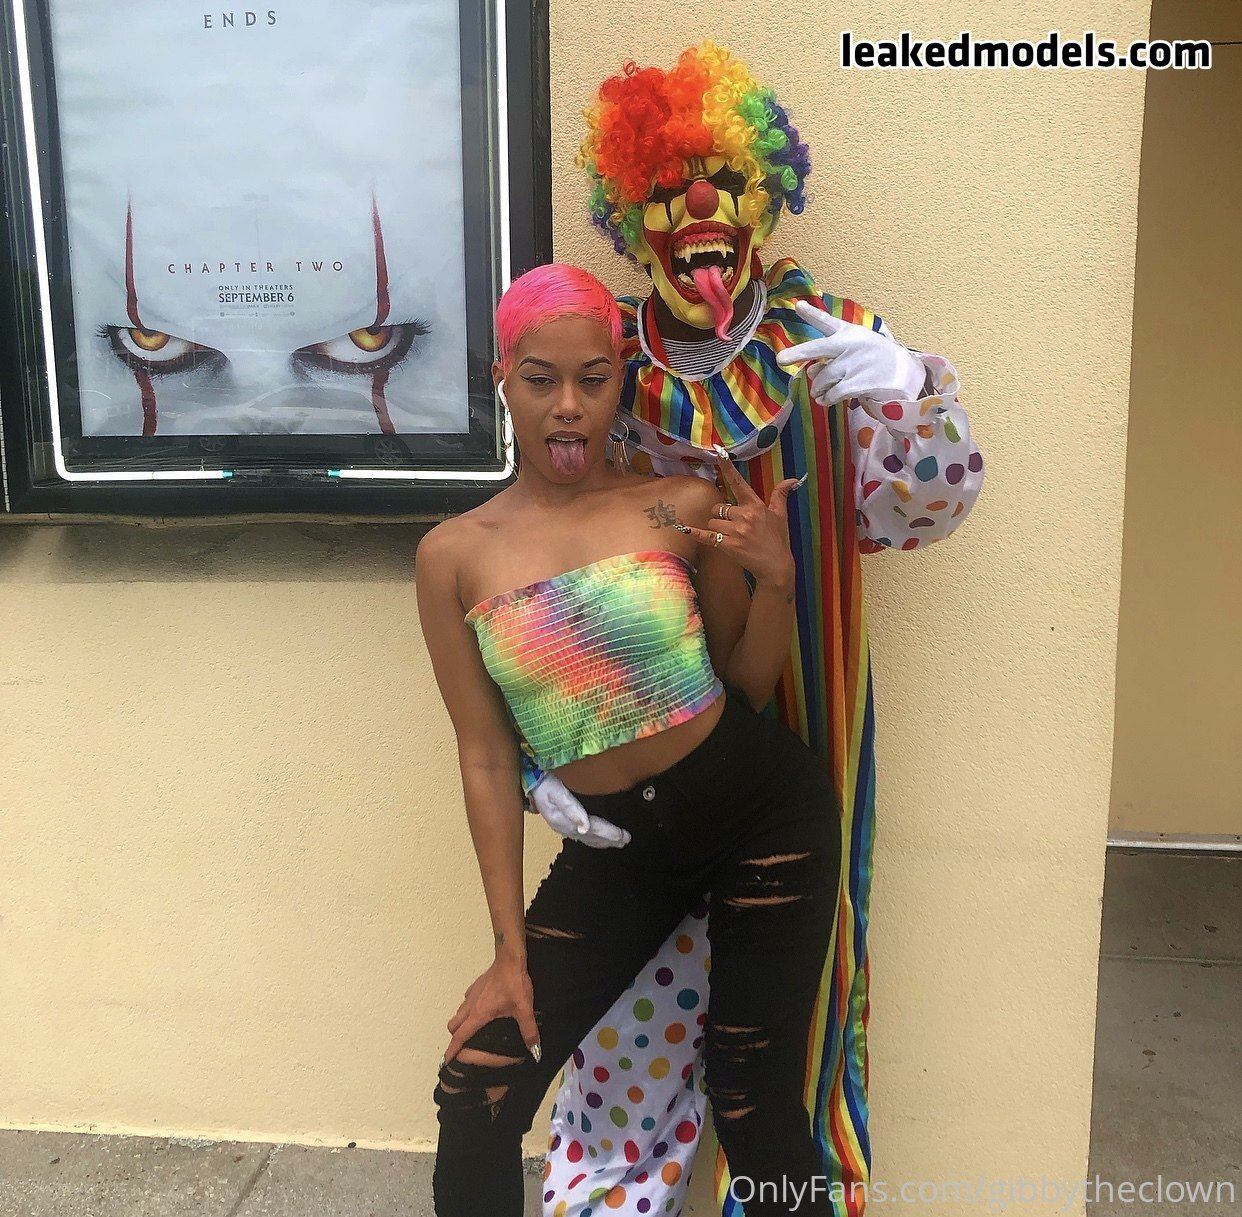 gibbytheclown OnlyFans Leaks (86 Photos and 10 Videos)